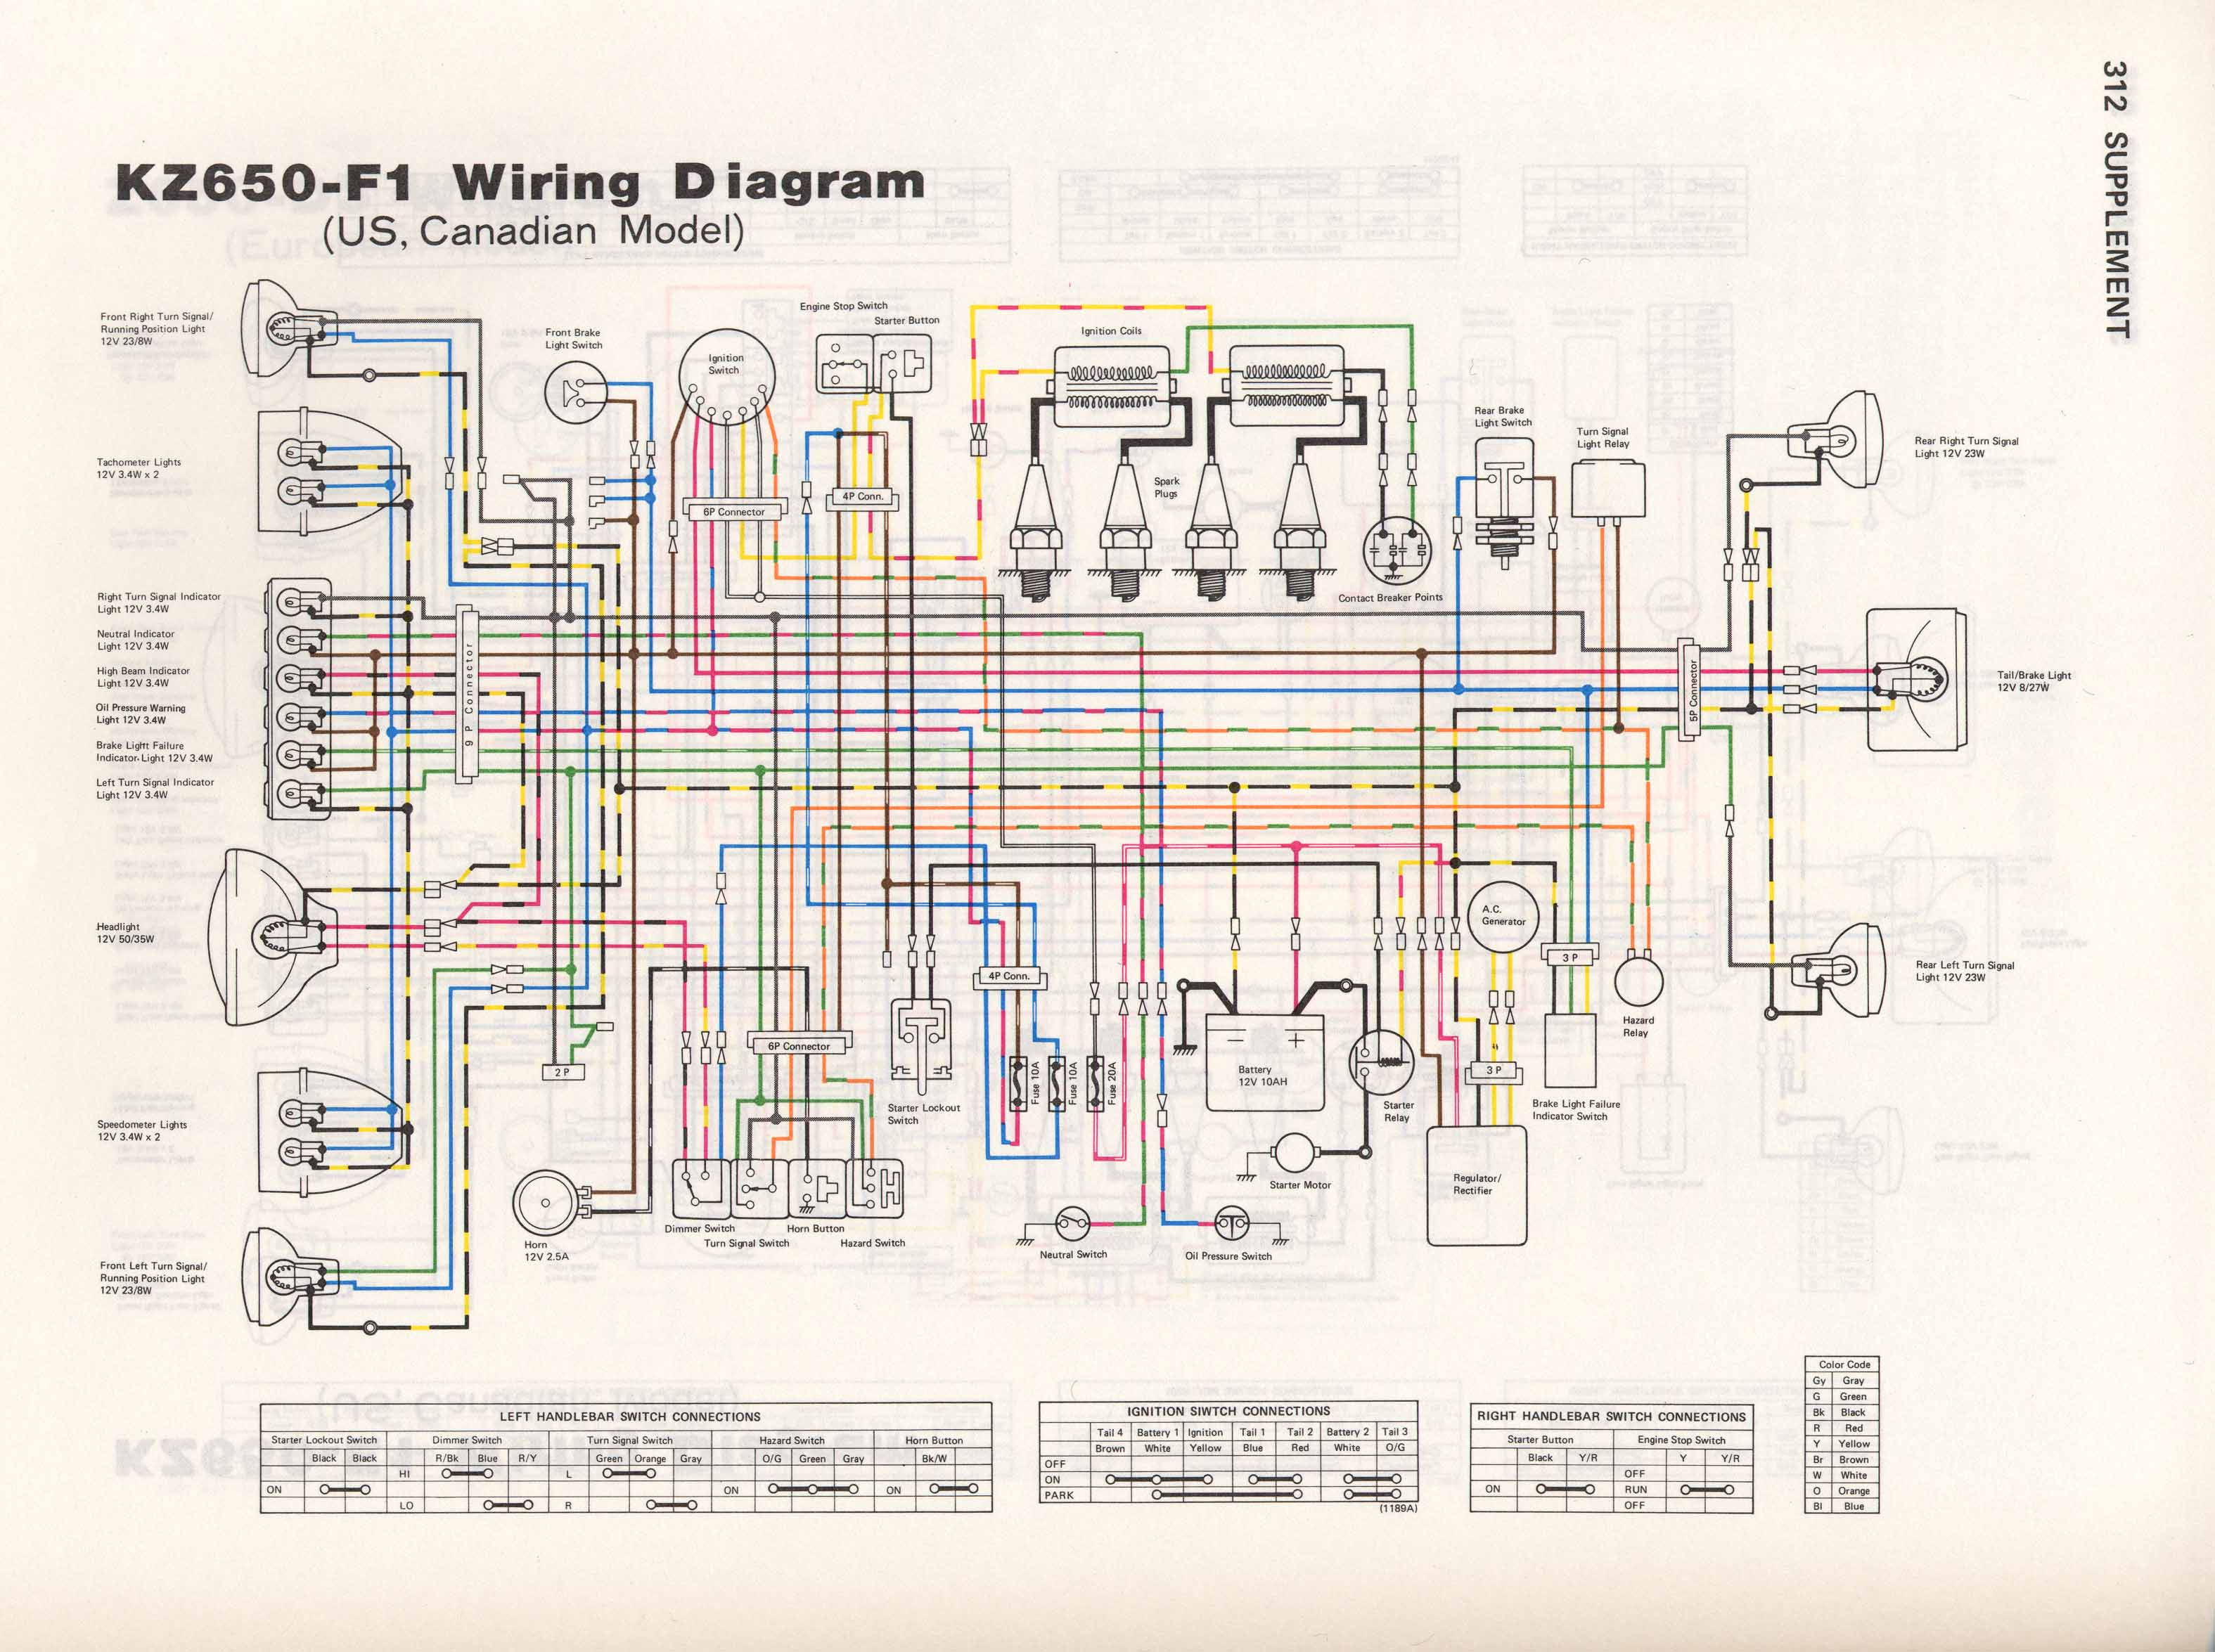 1977 kawasaki kz1000 wiring diagram wan network topology for 1979 c3 get free image about